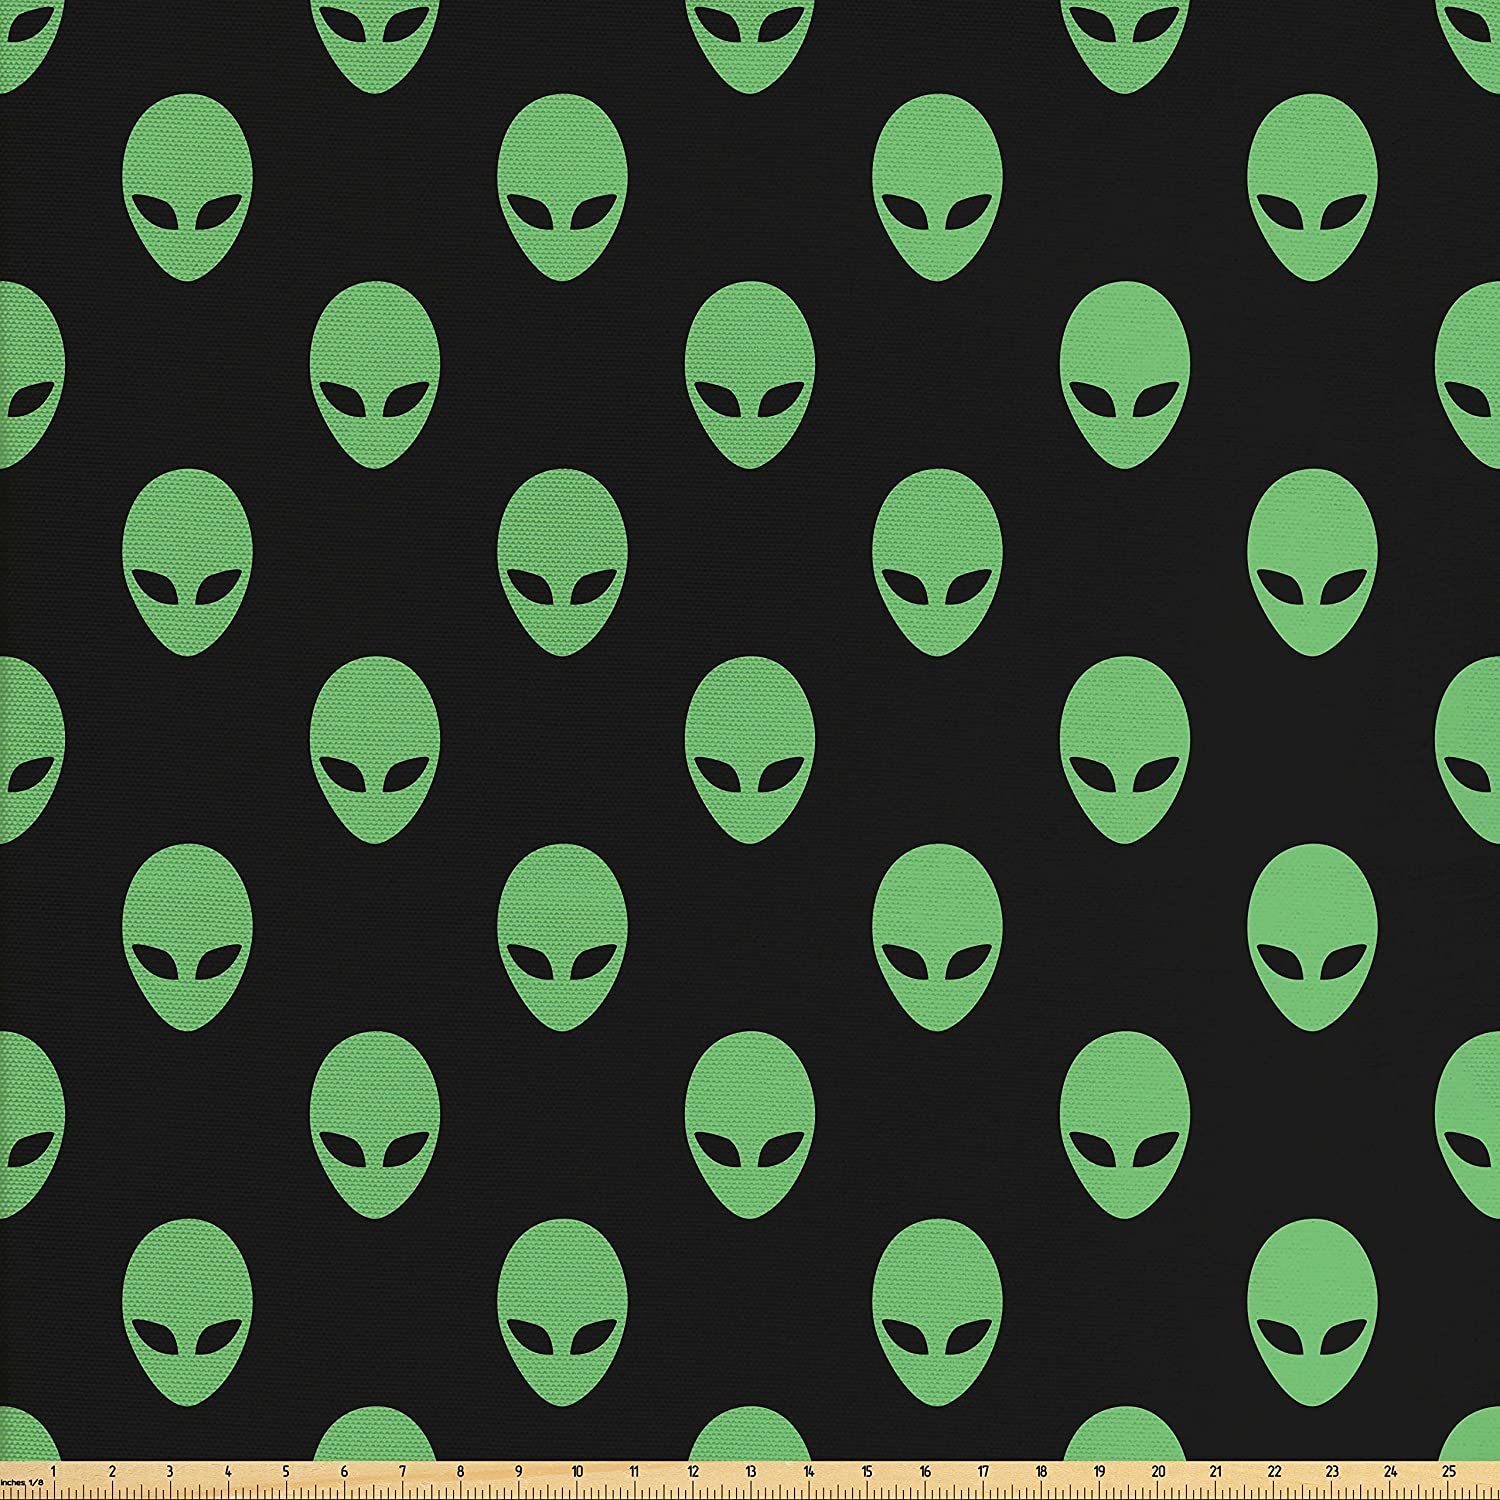 Ambesonne Alien Fabric by The Yard, Supernatural Martiansal Beings from Other Planets Head of an Alien, Decorative Fabric for Upholstery and Home Accents, Fern Green Black